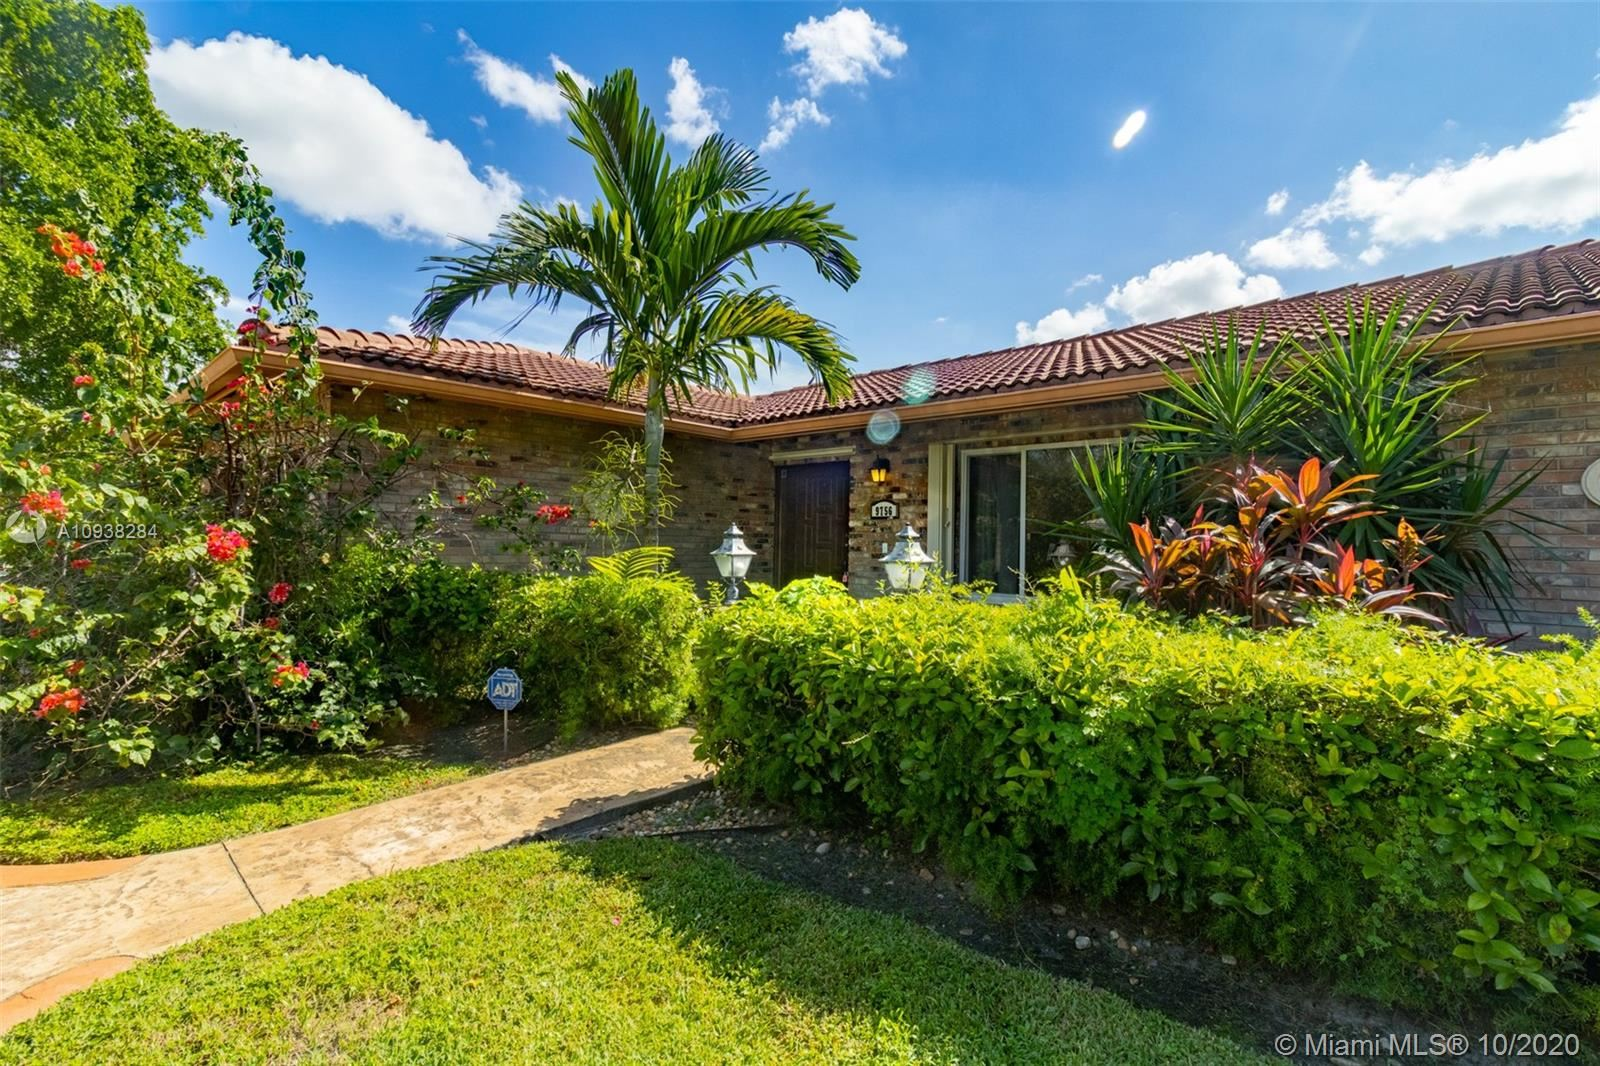 9756 NW 20th St, Coral Springs, FL 33071 - #: A10938284